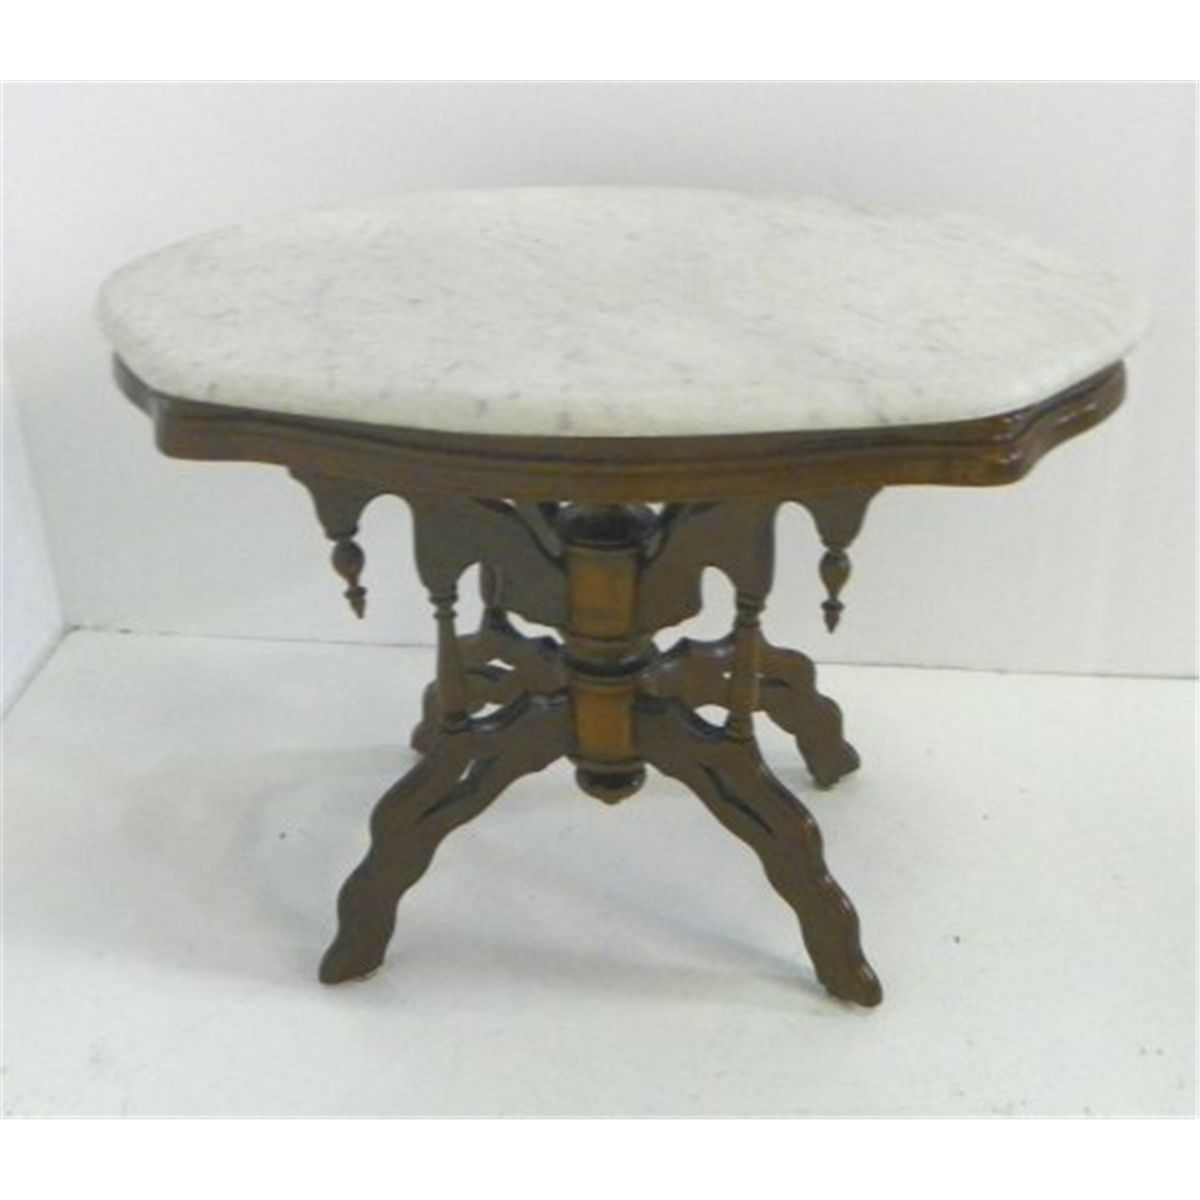 Victorian Marble Coffee Table: Marble Top Victorian Coffee Table & Oval Mirror